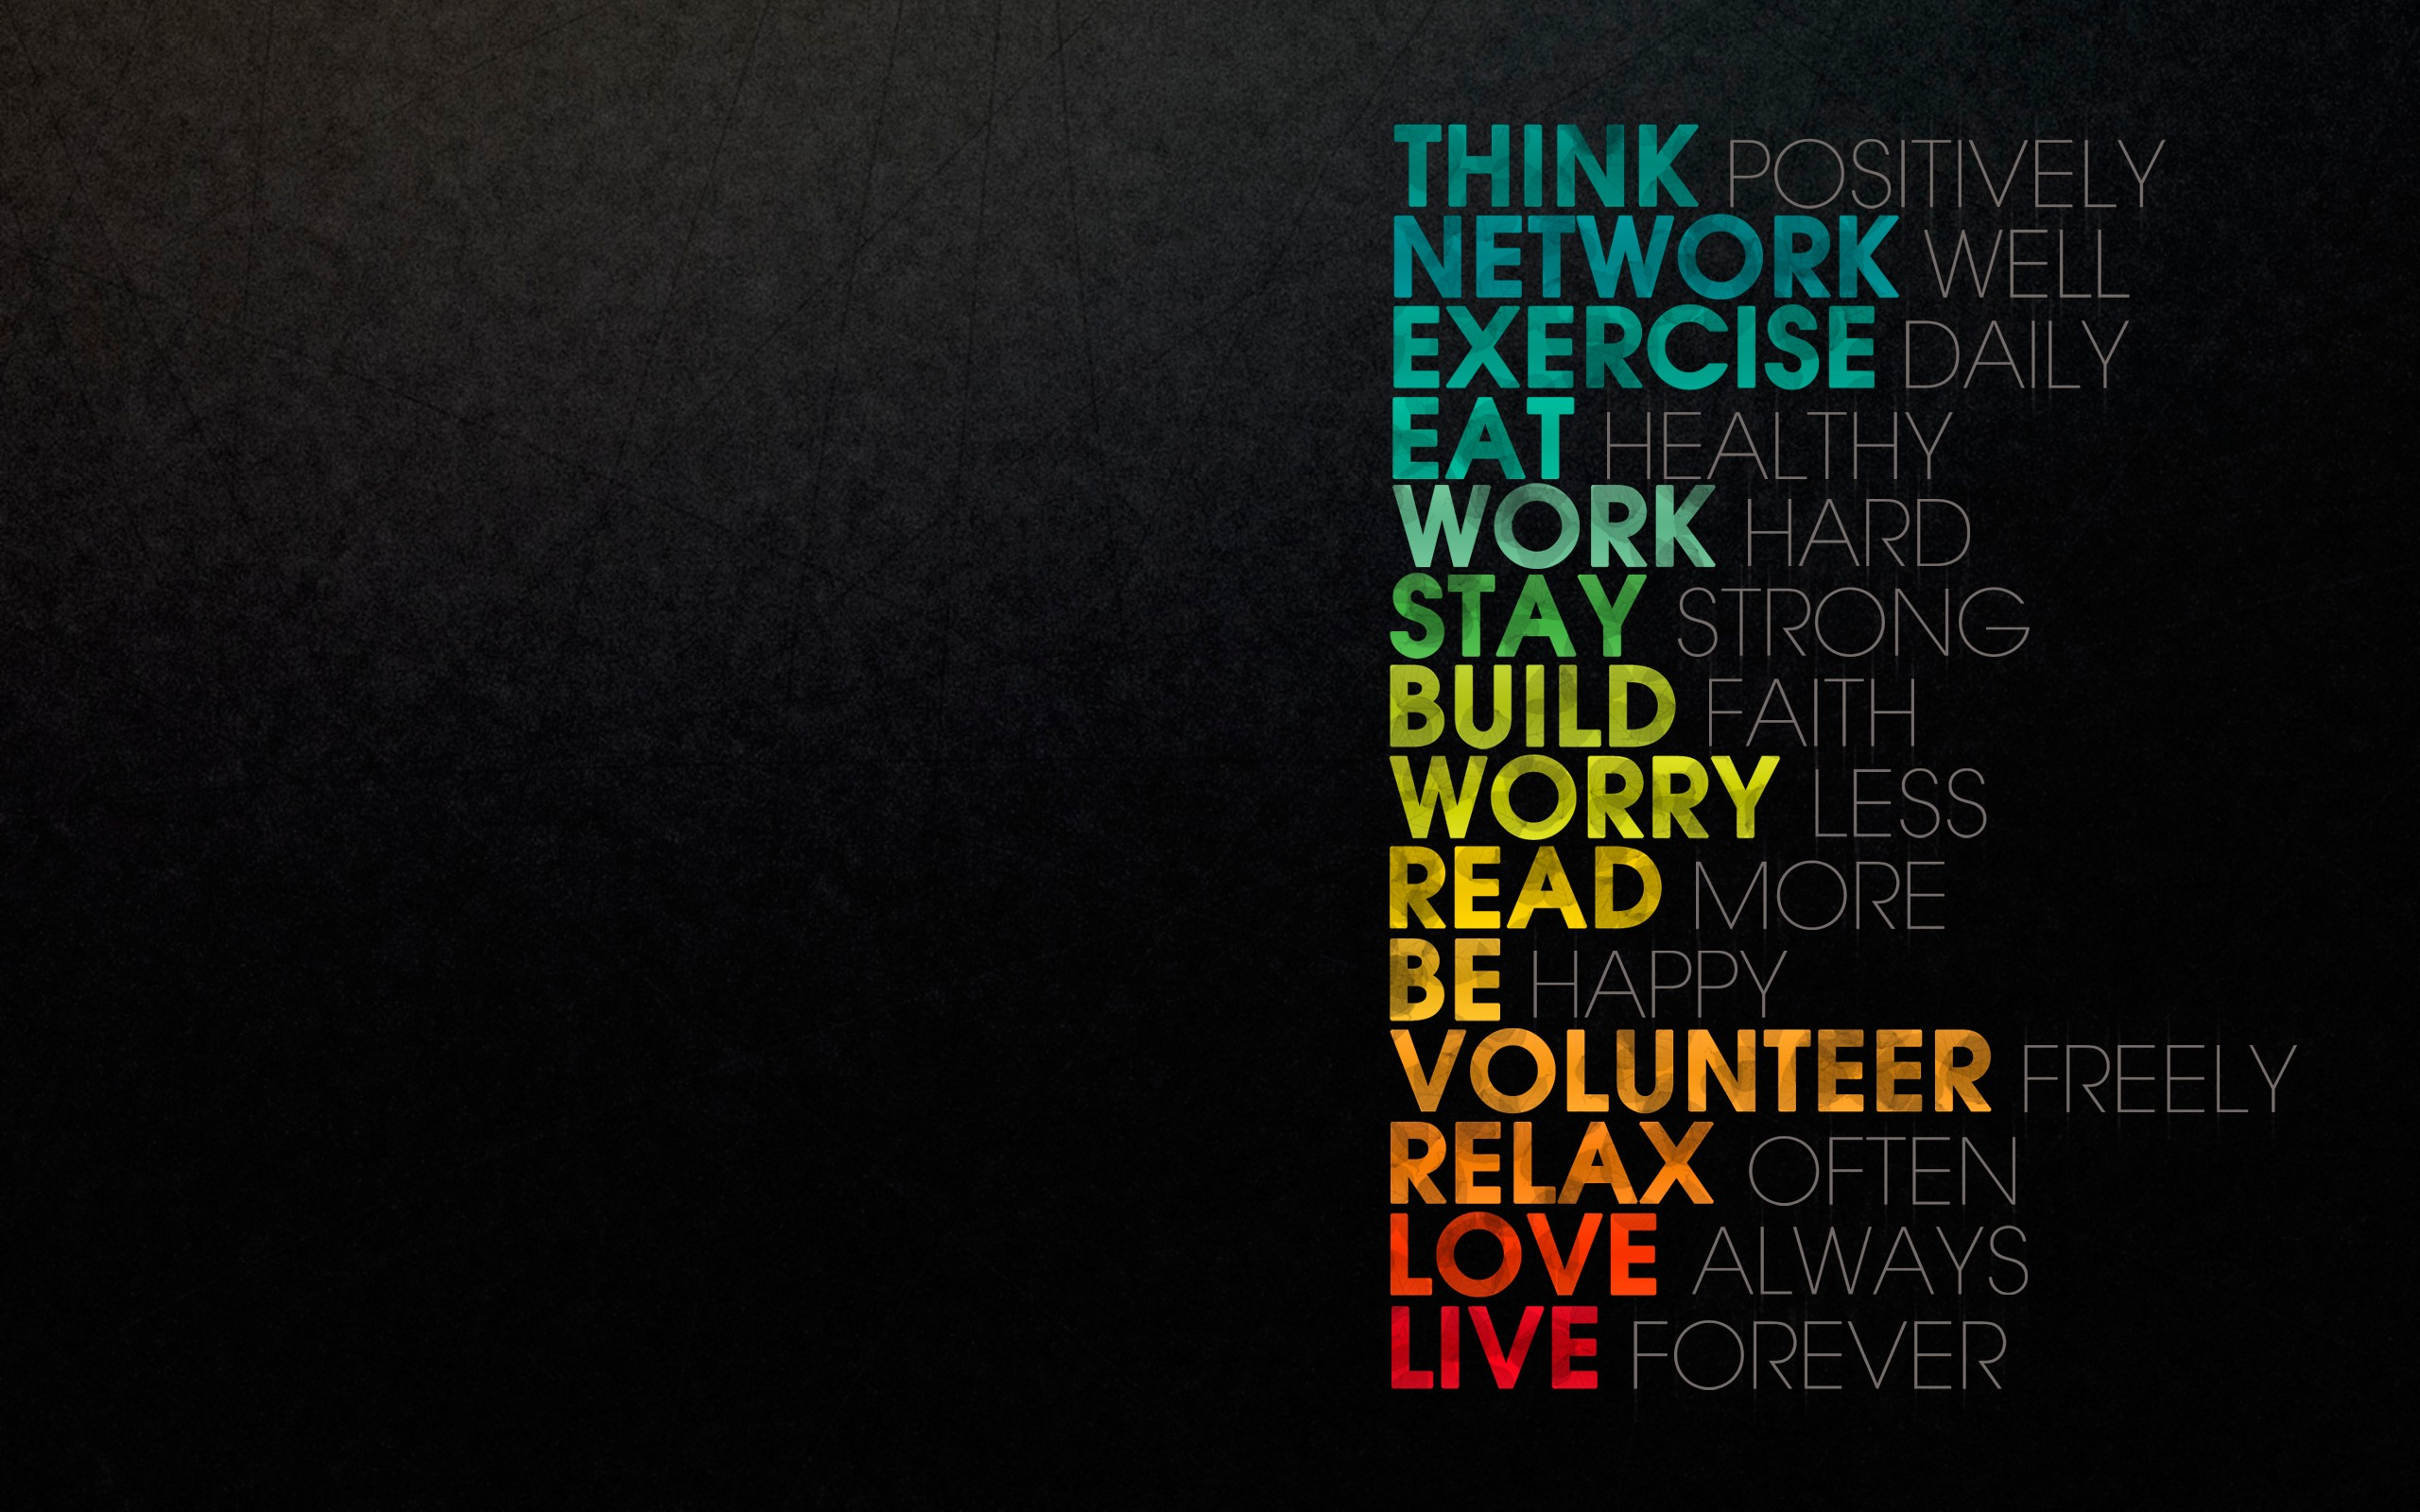 Awesome Inspirational Wallpaper